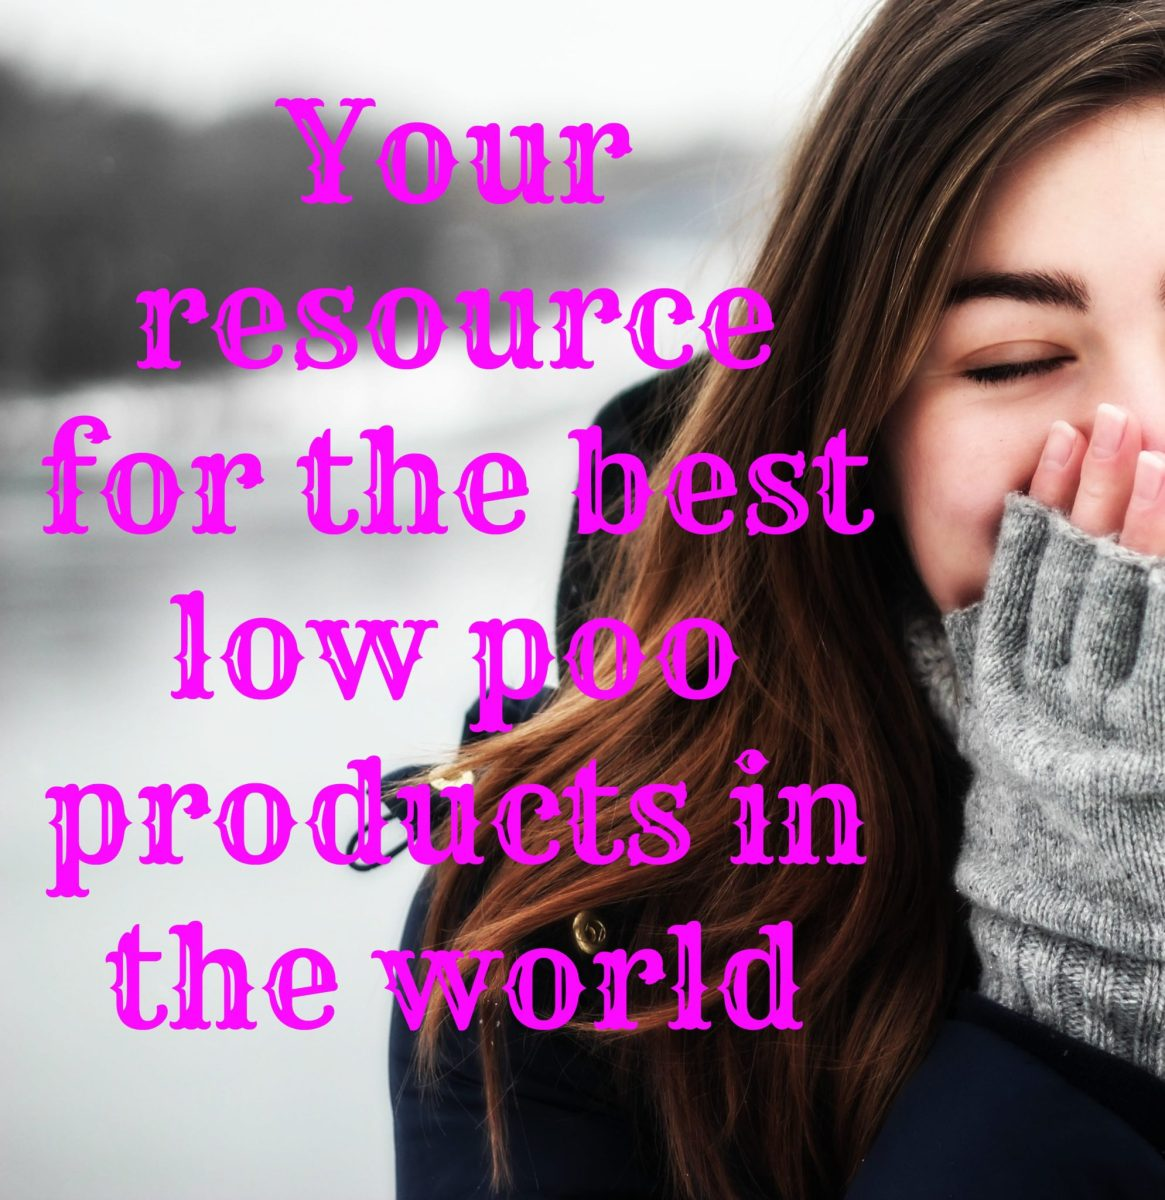 Your resource for the best low poo products in the world